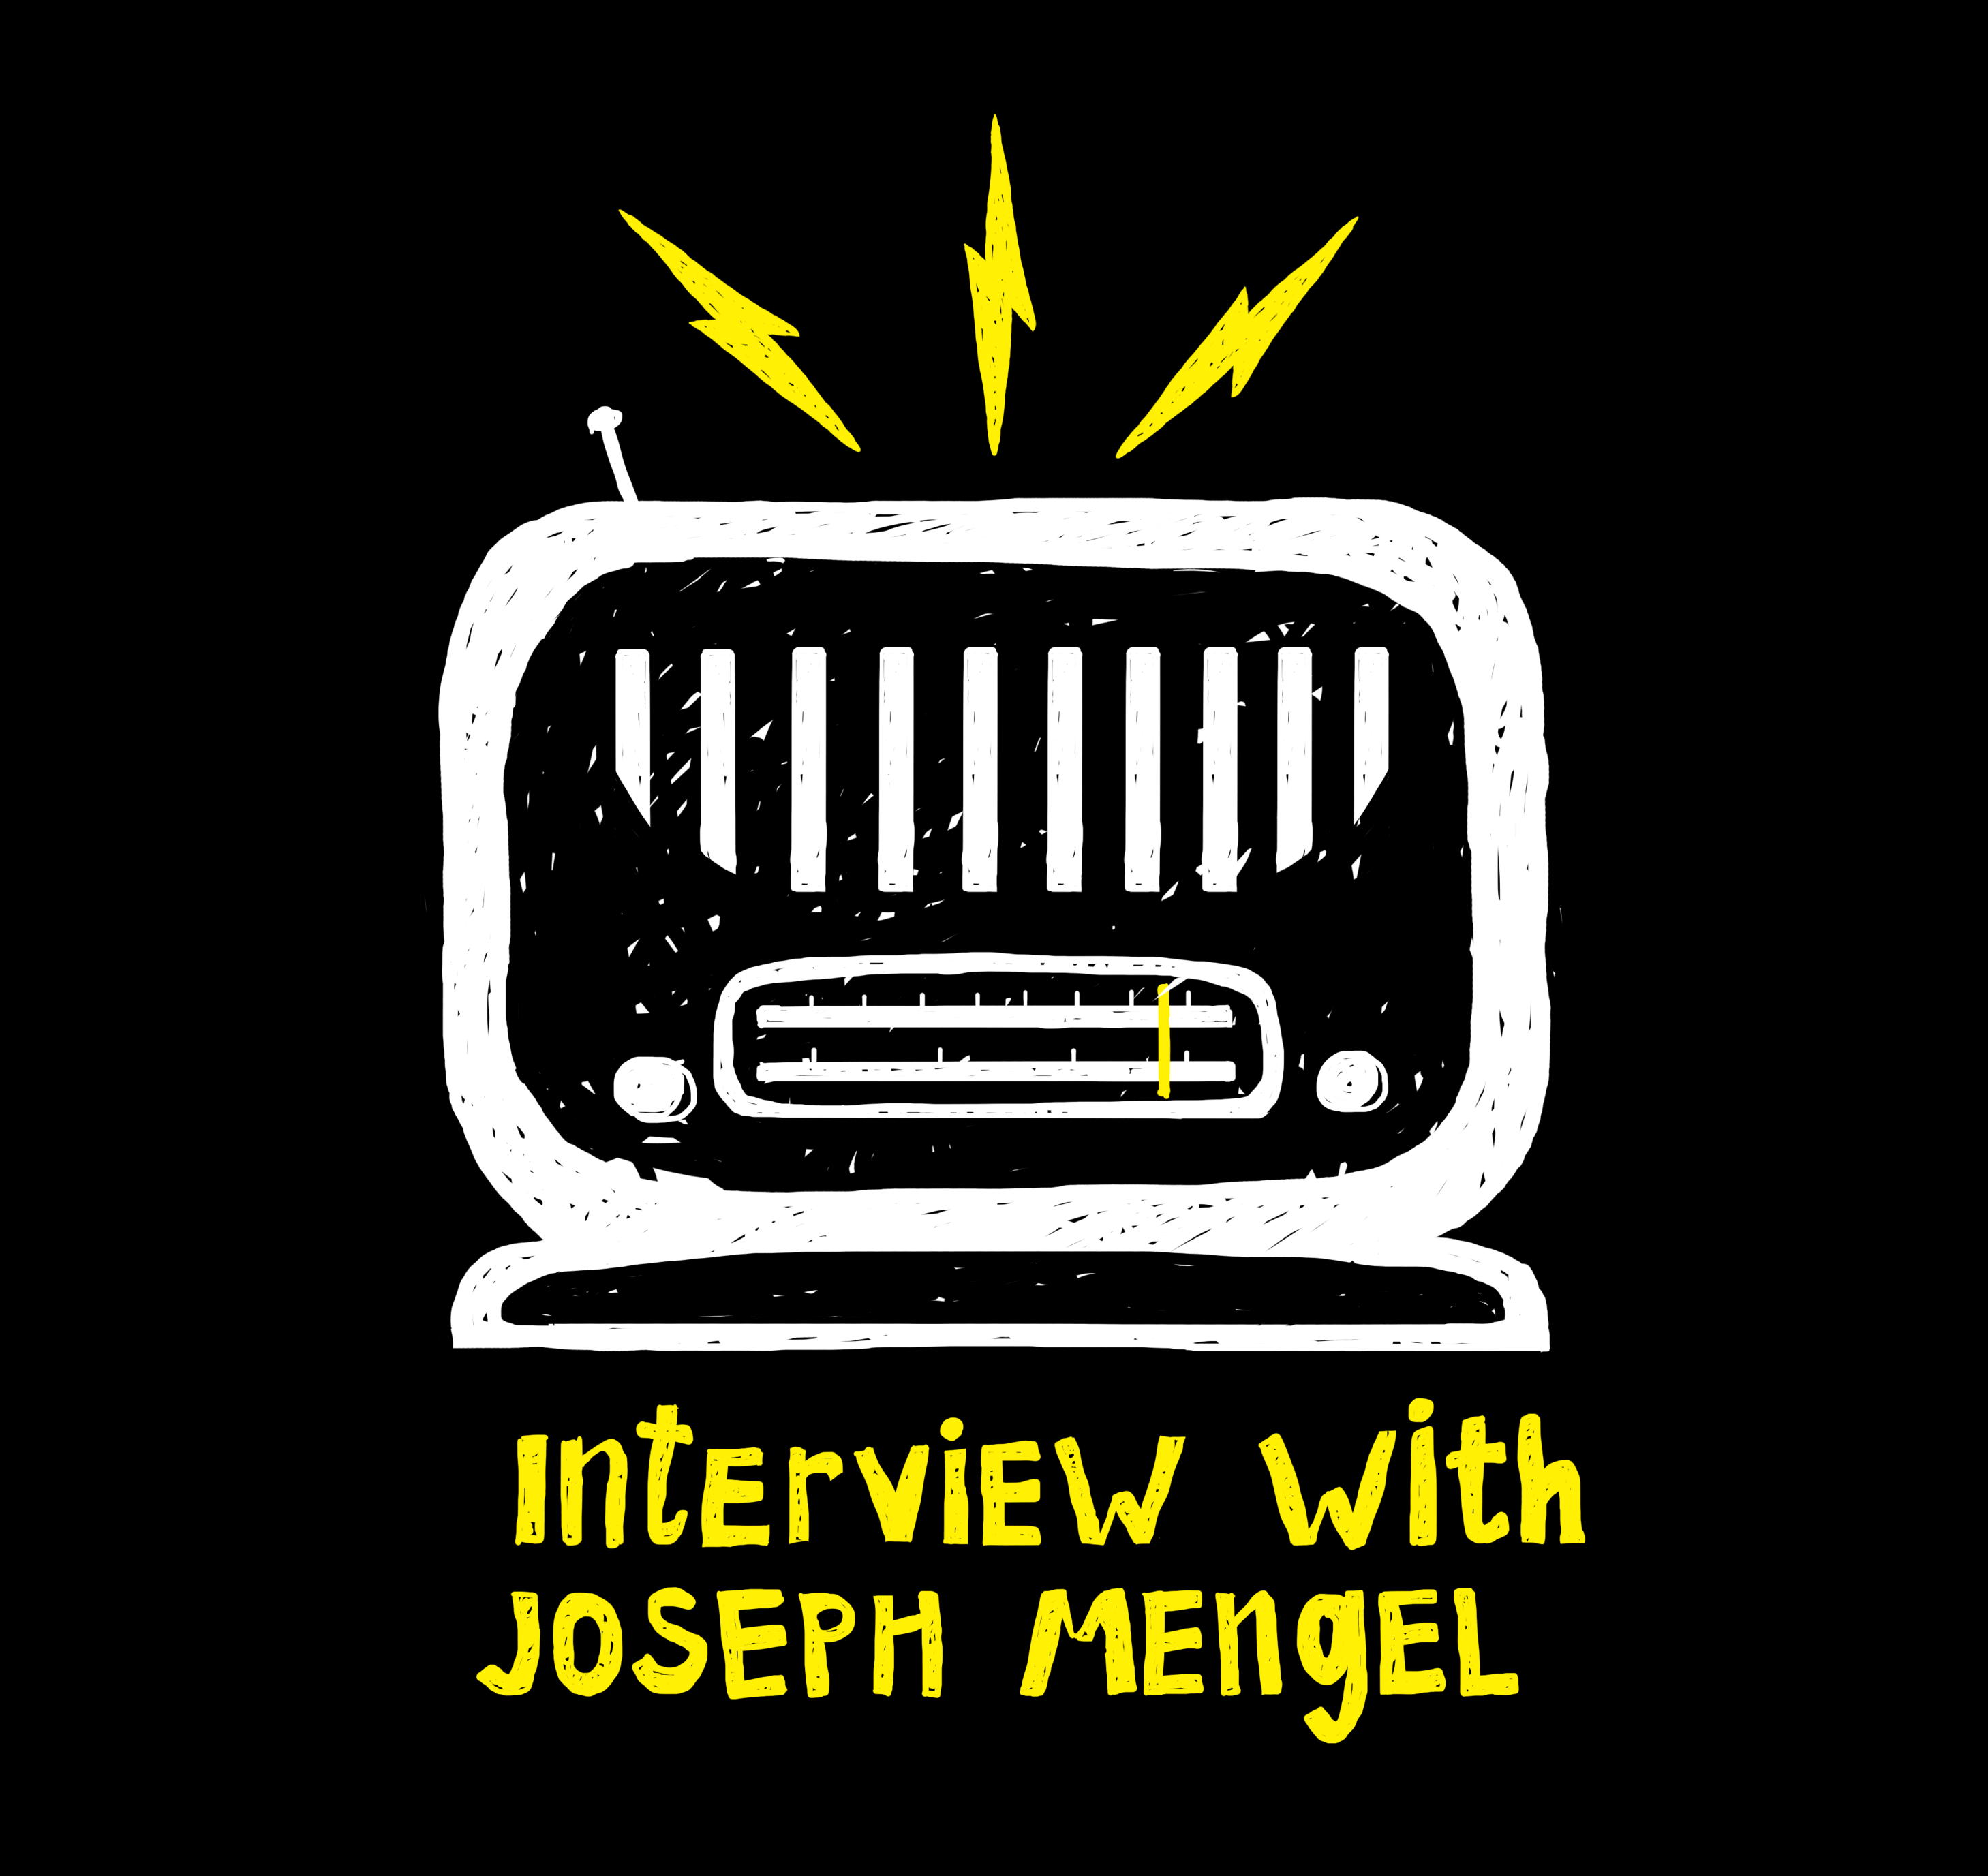 mengel_39_s_interview